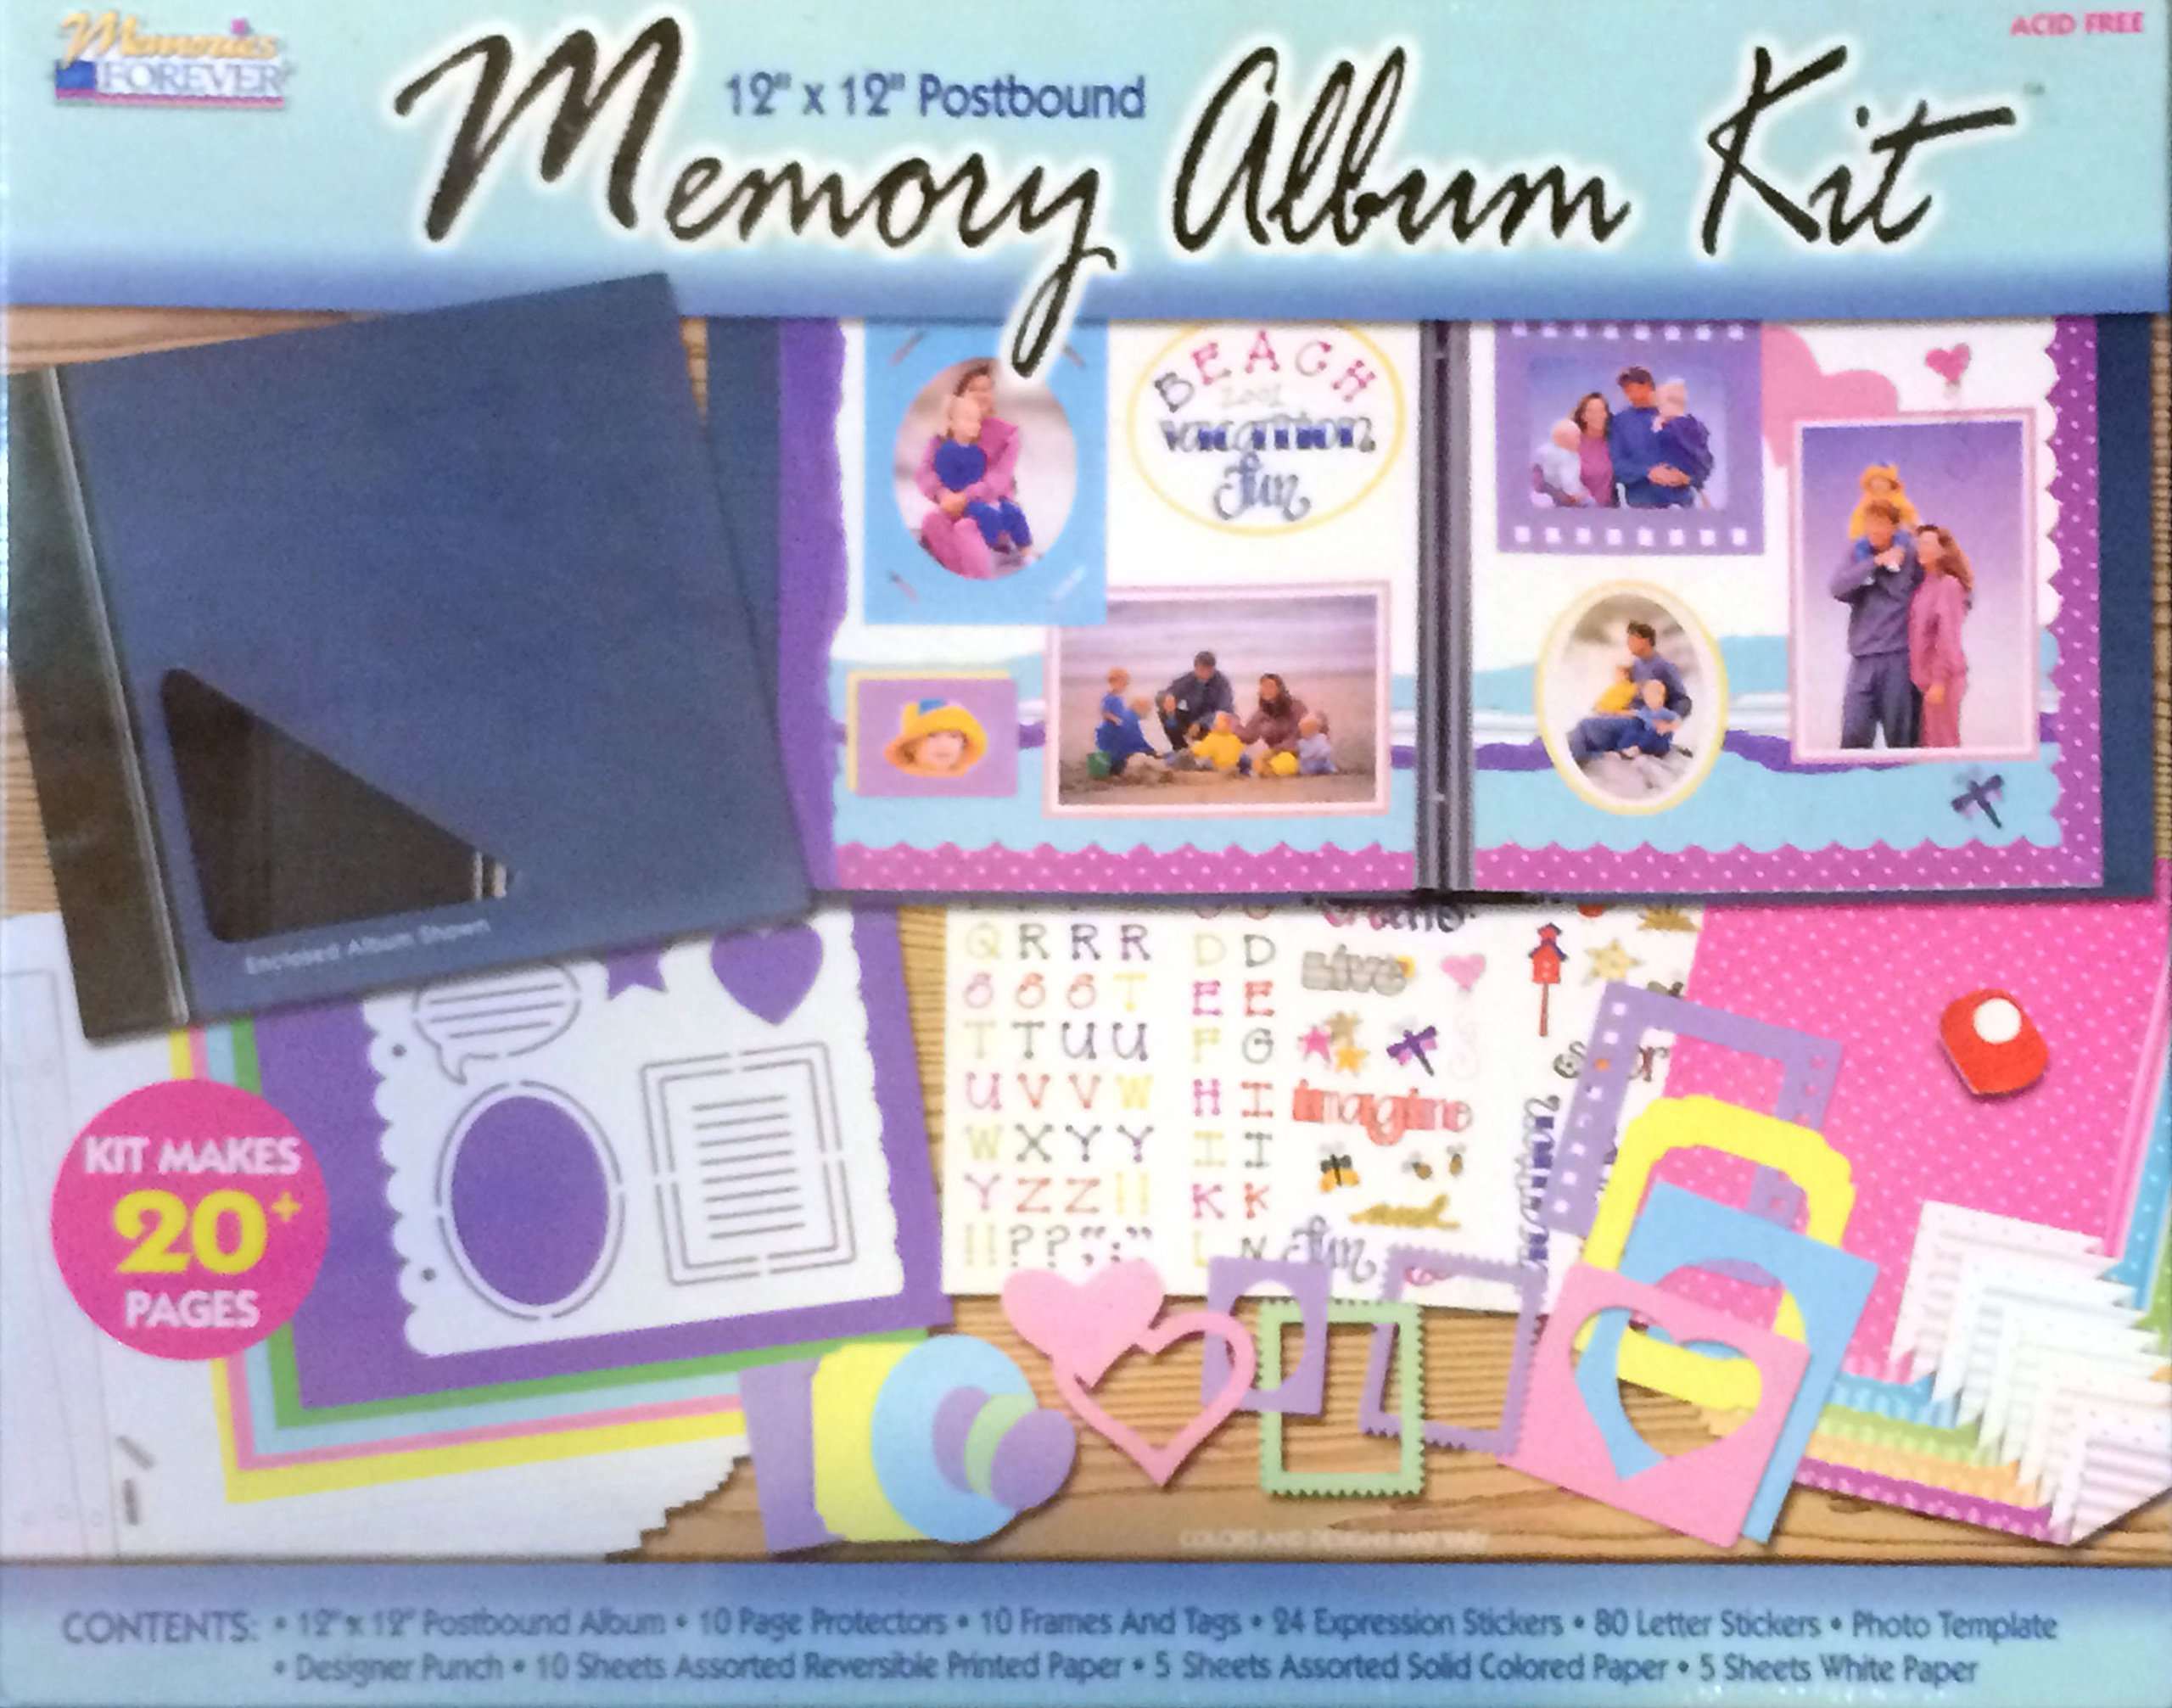 The Complete Scrapbook Kit Memory Album